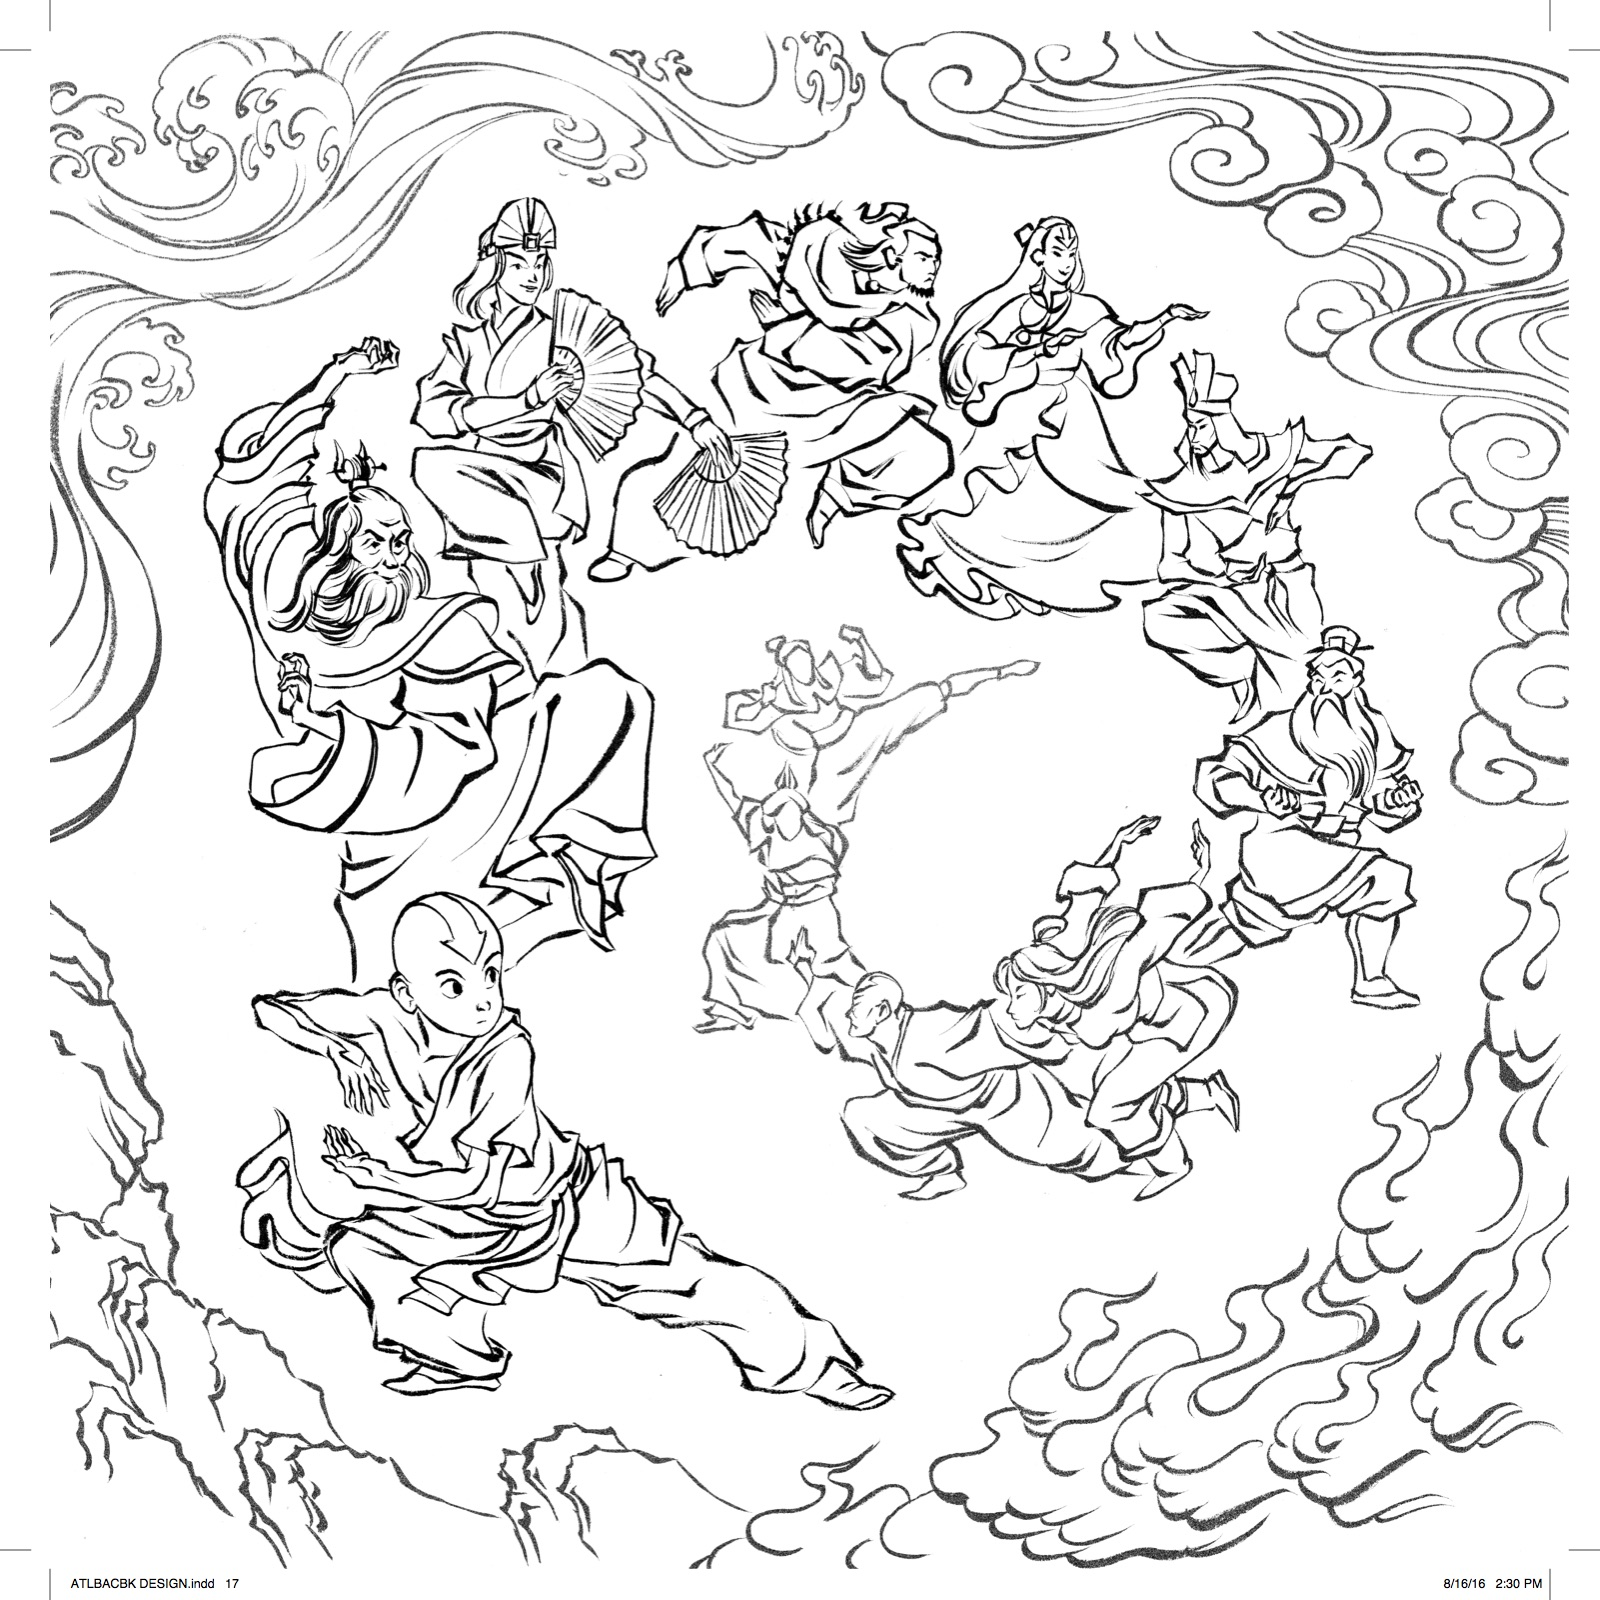 Avatar month 2016 coloring contest blog dark horse for Avatar coloring pages